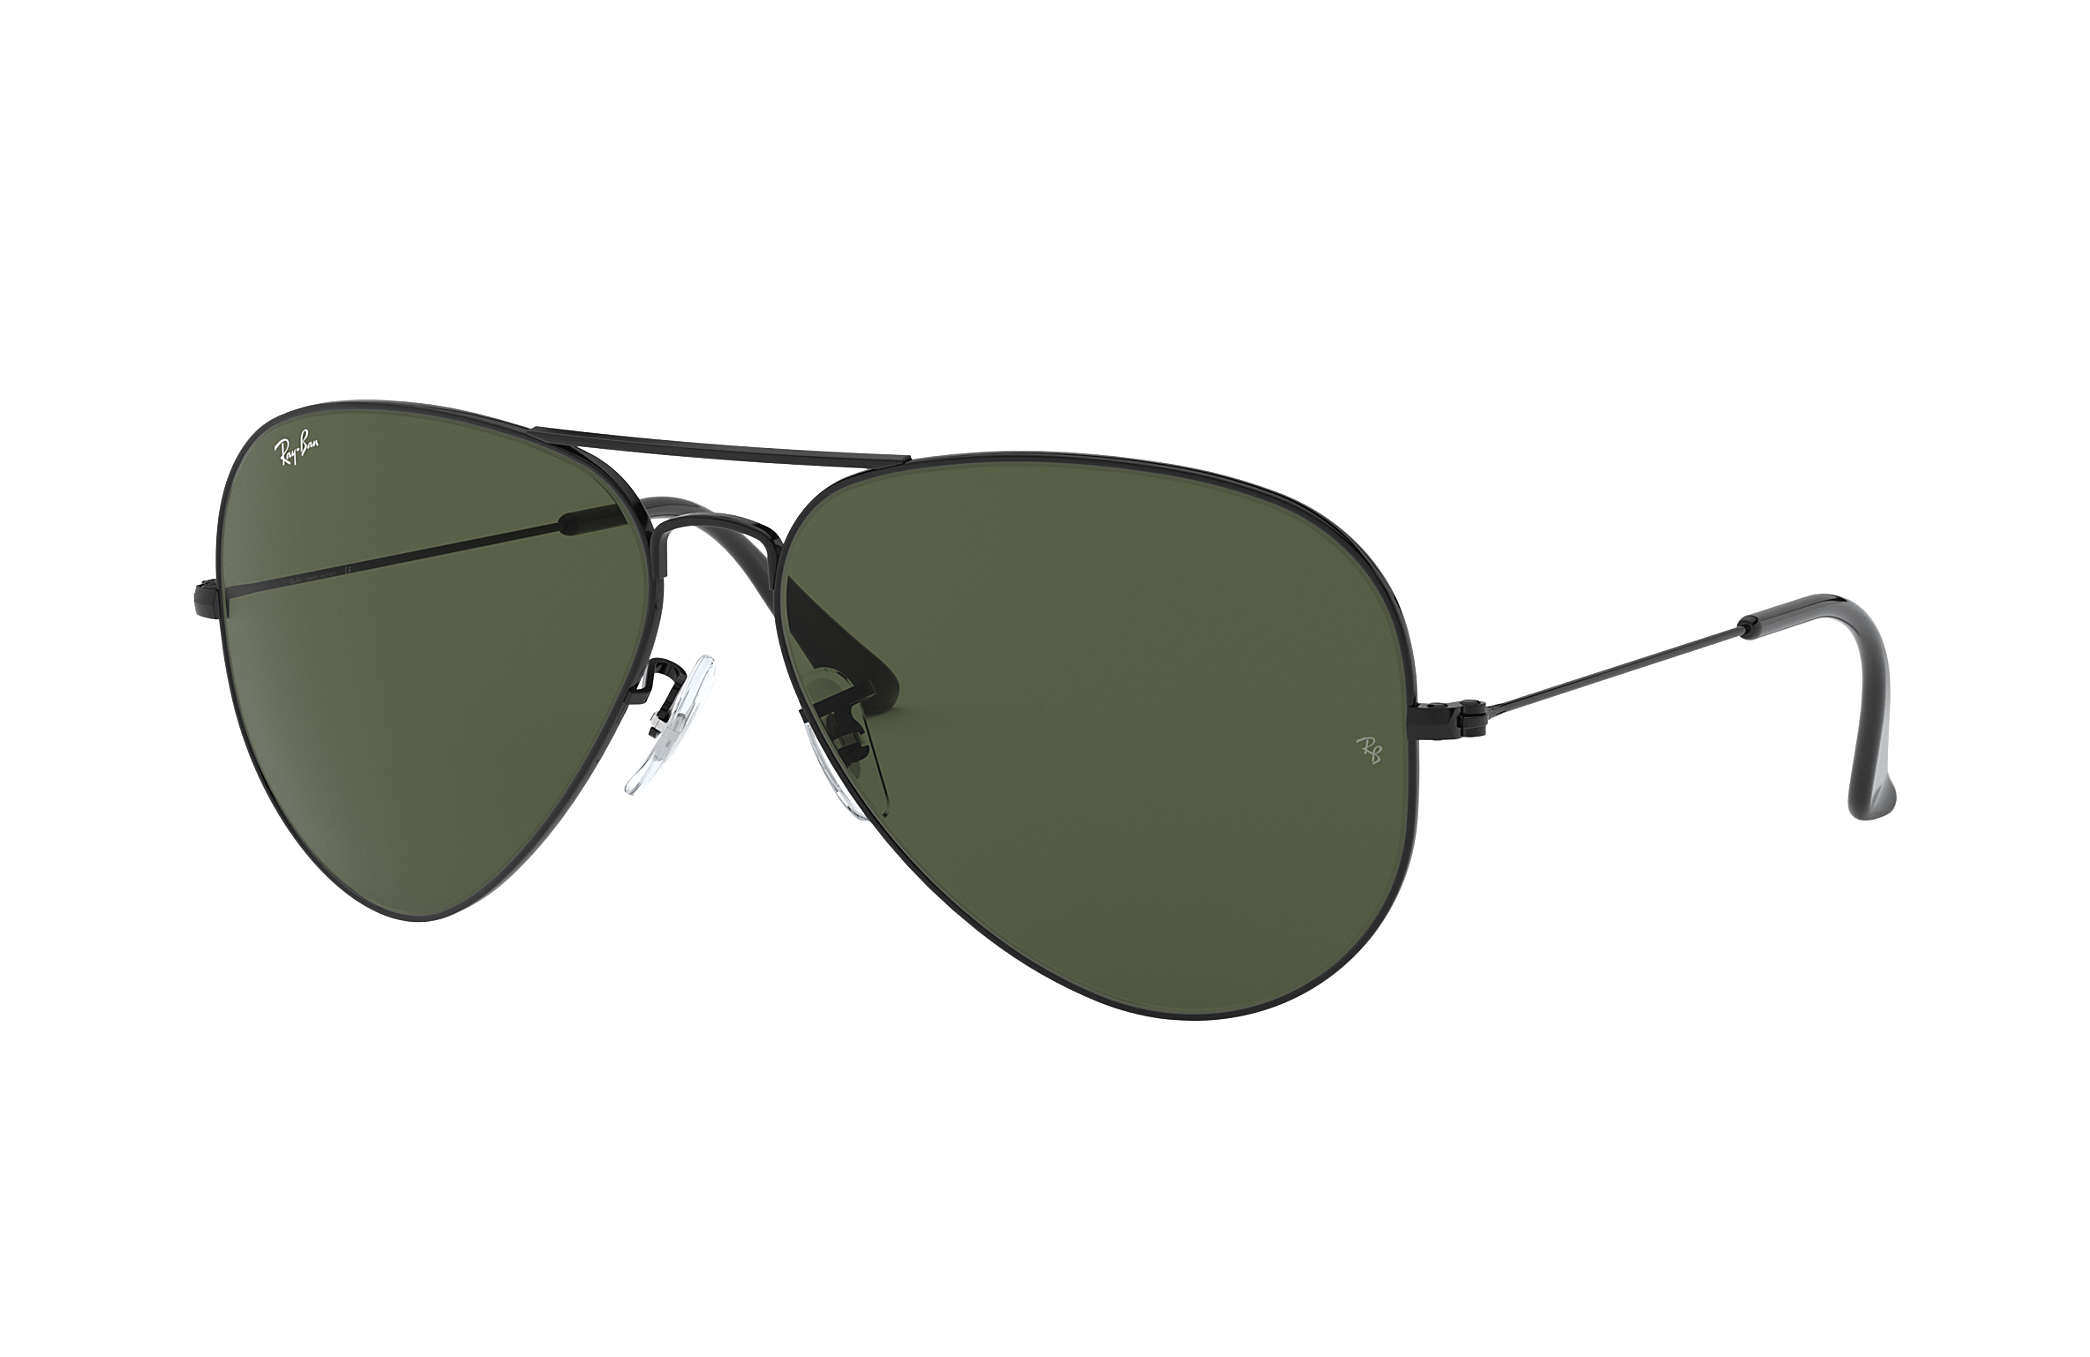 18cb2b0c6ebba Ray-Ban Aviator Classic RB3026 Black - Metal - Green Lenses ...